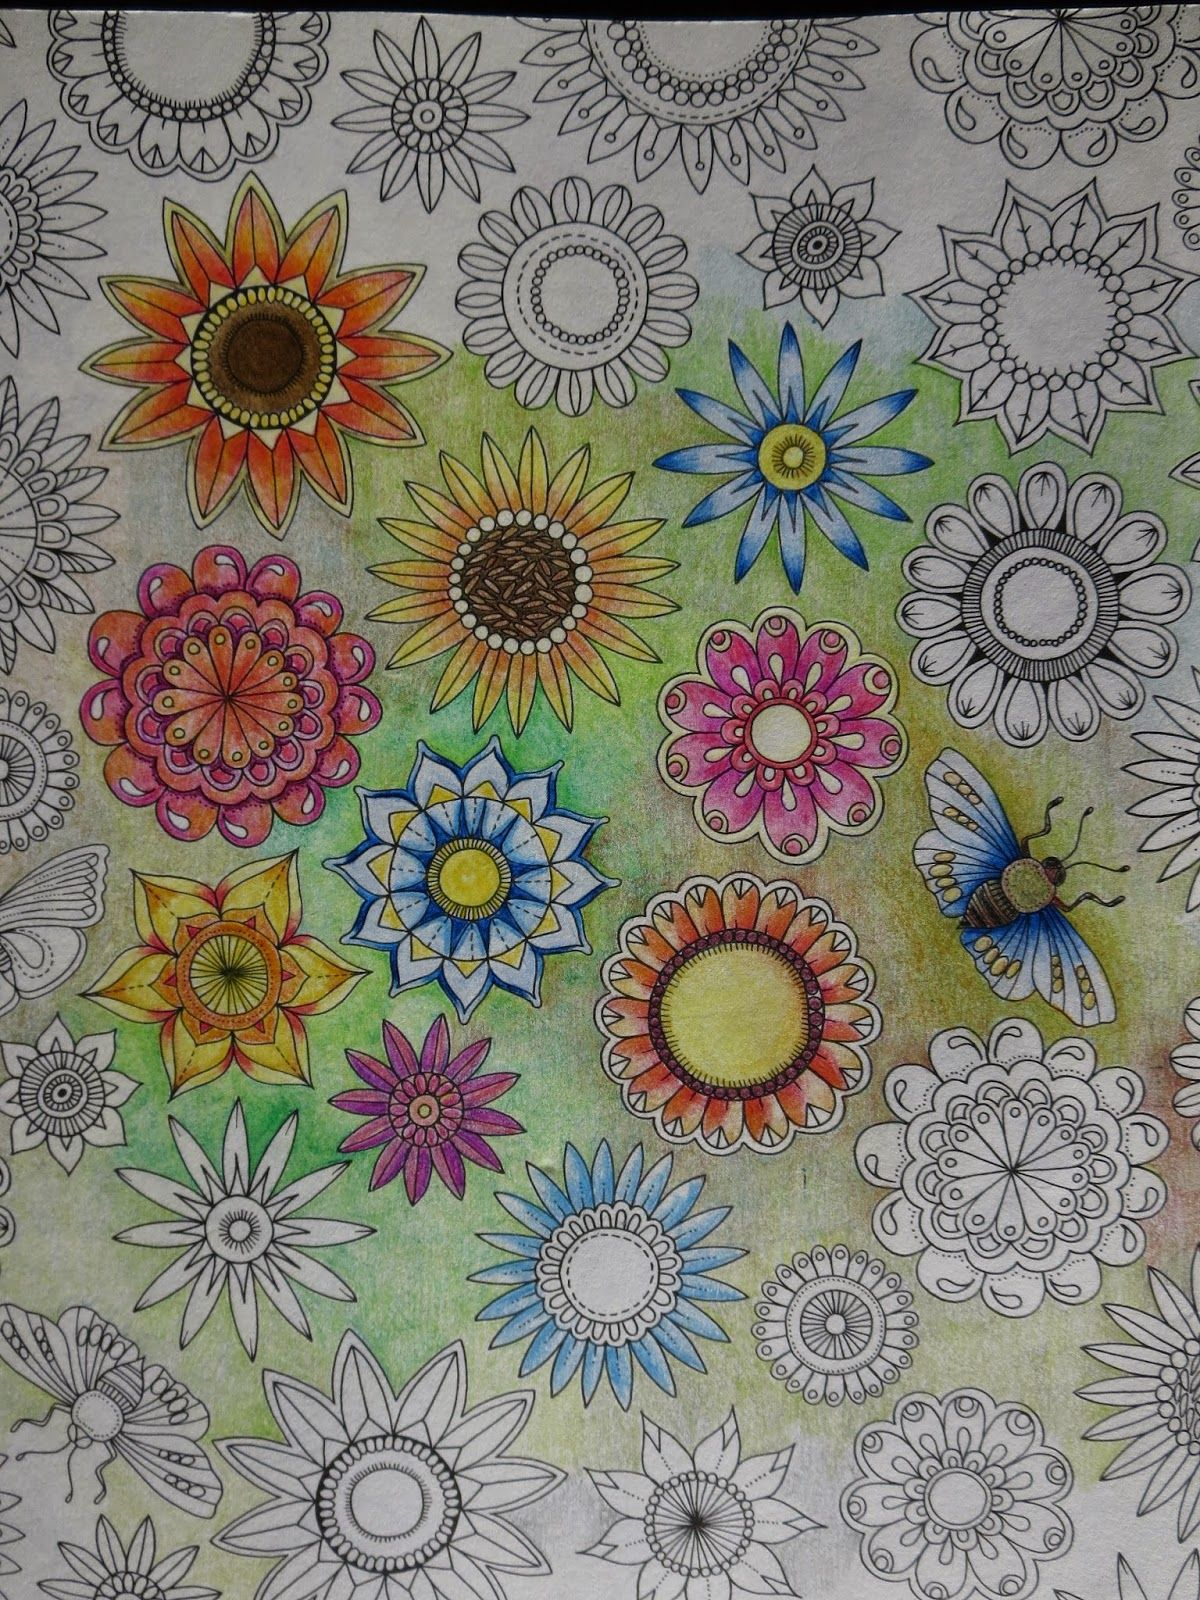 Passion For Pencils My Secret Garden Colouring Book Part 6 Testing